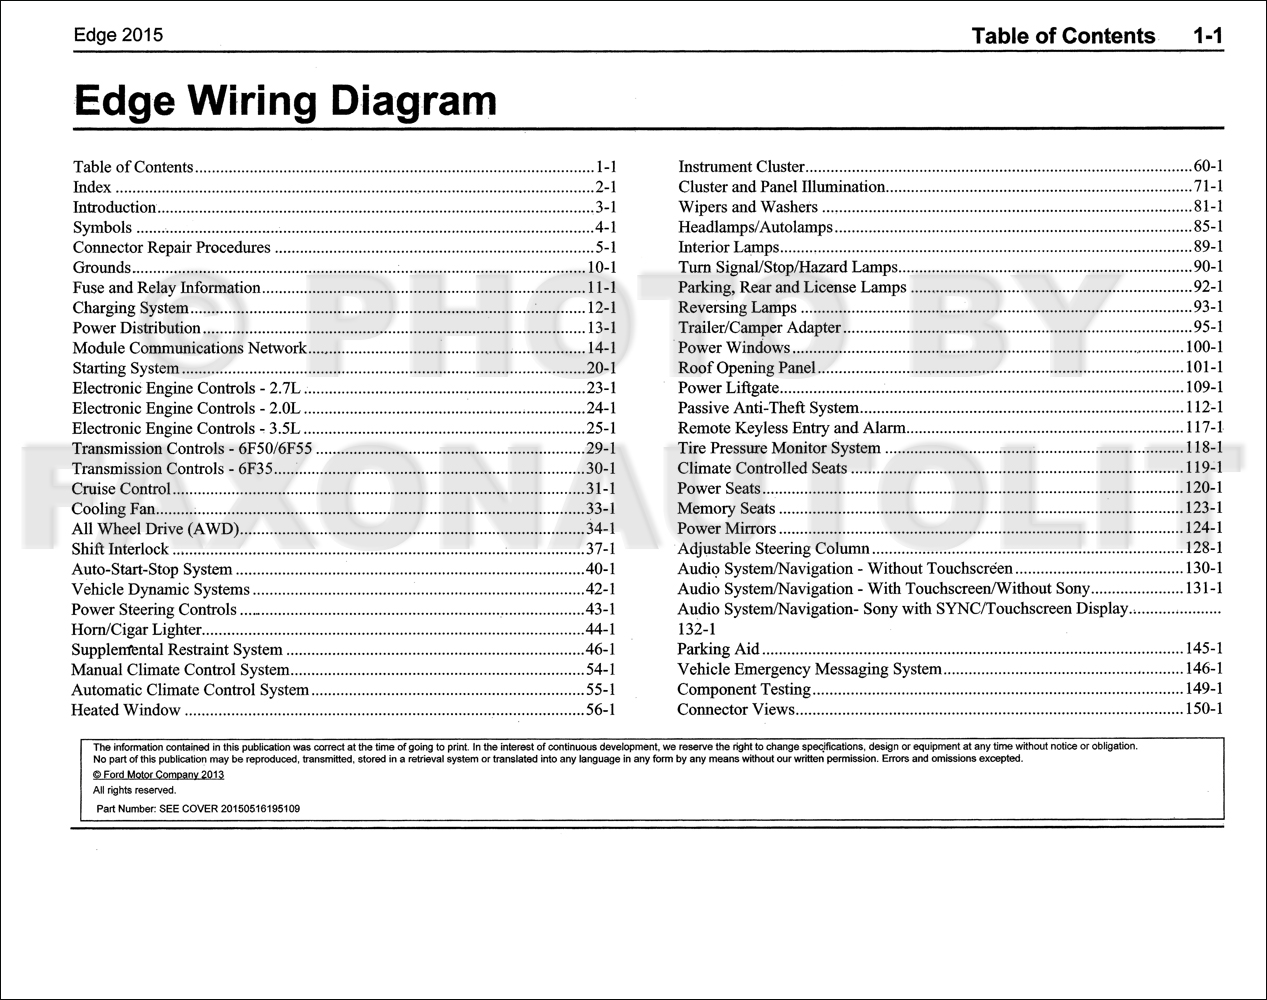 Wiring Diagram 2015 Ford Edge Schema Diagrams 2008 Fuse Box Manual Original Panel